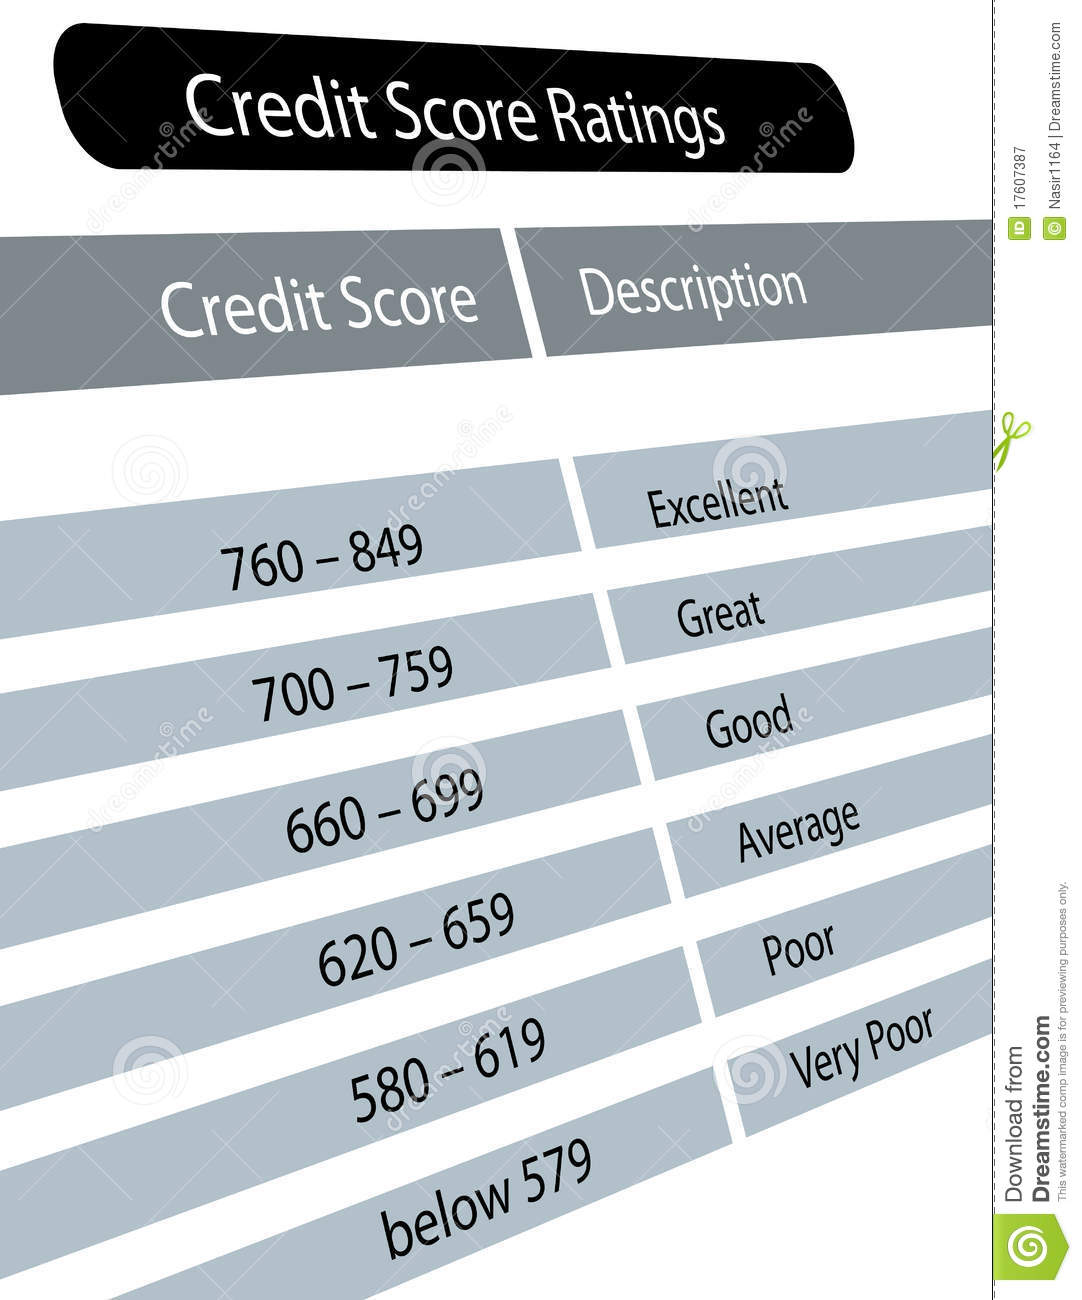 Credit score ratings royalty free stock photography image 17607387